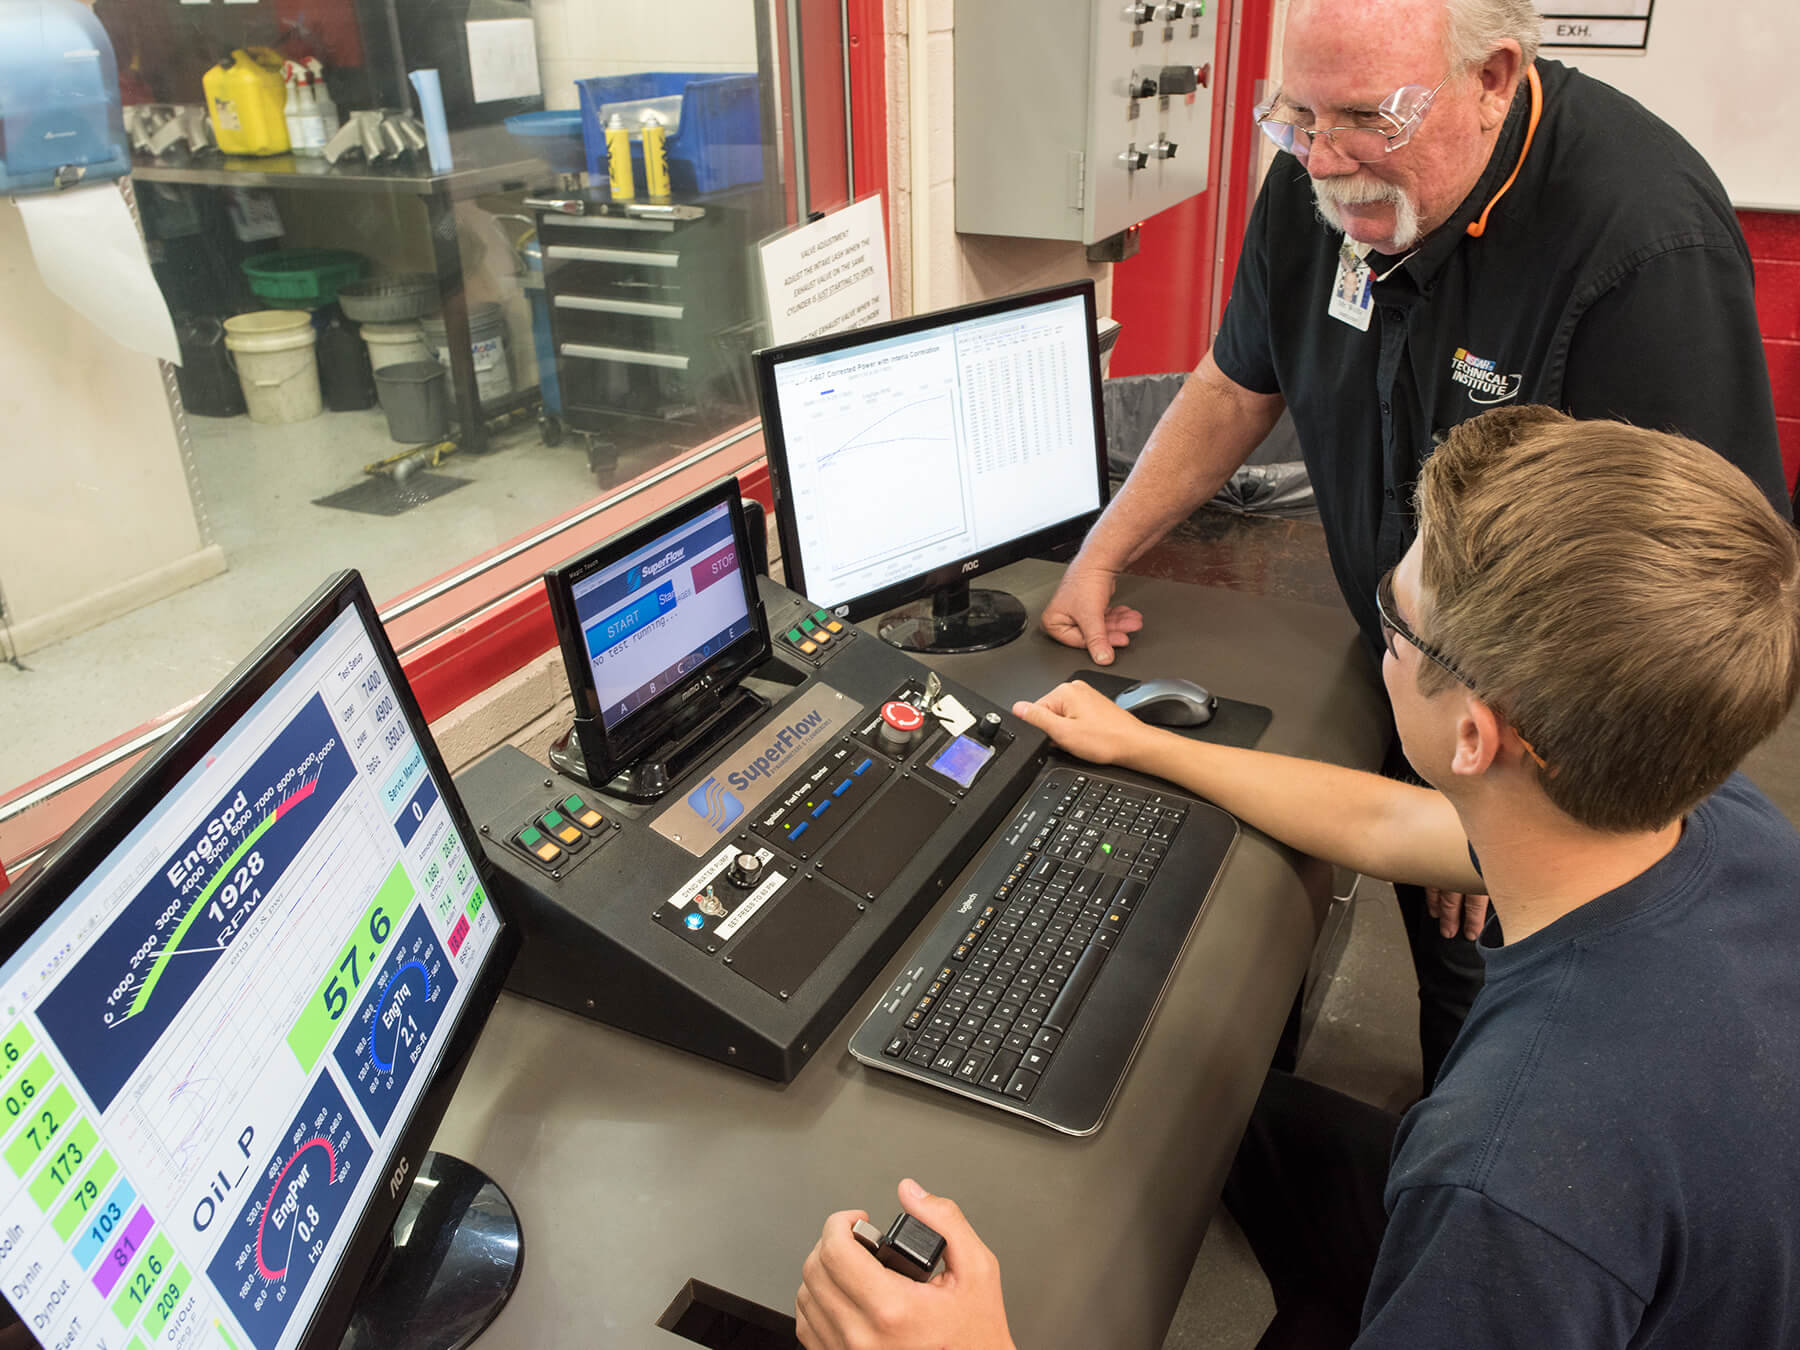 Instructor and student working in front of a computer in the DYNO lab at Mooresville campus